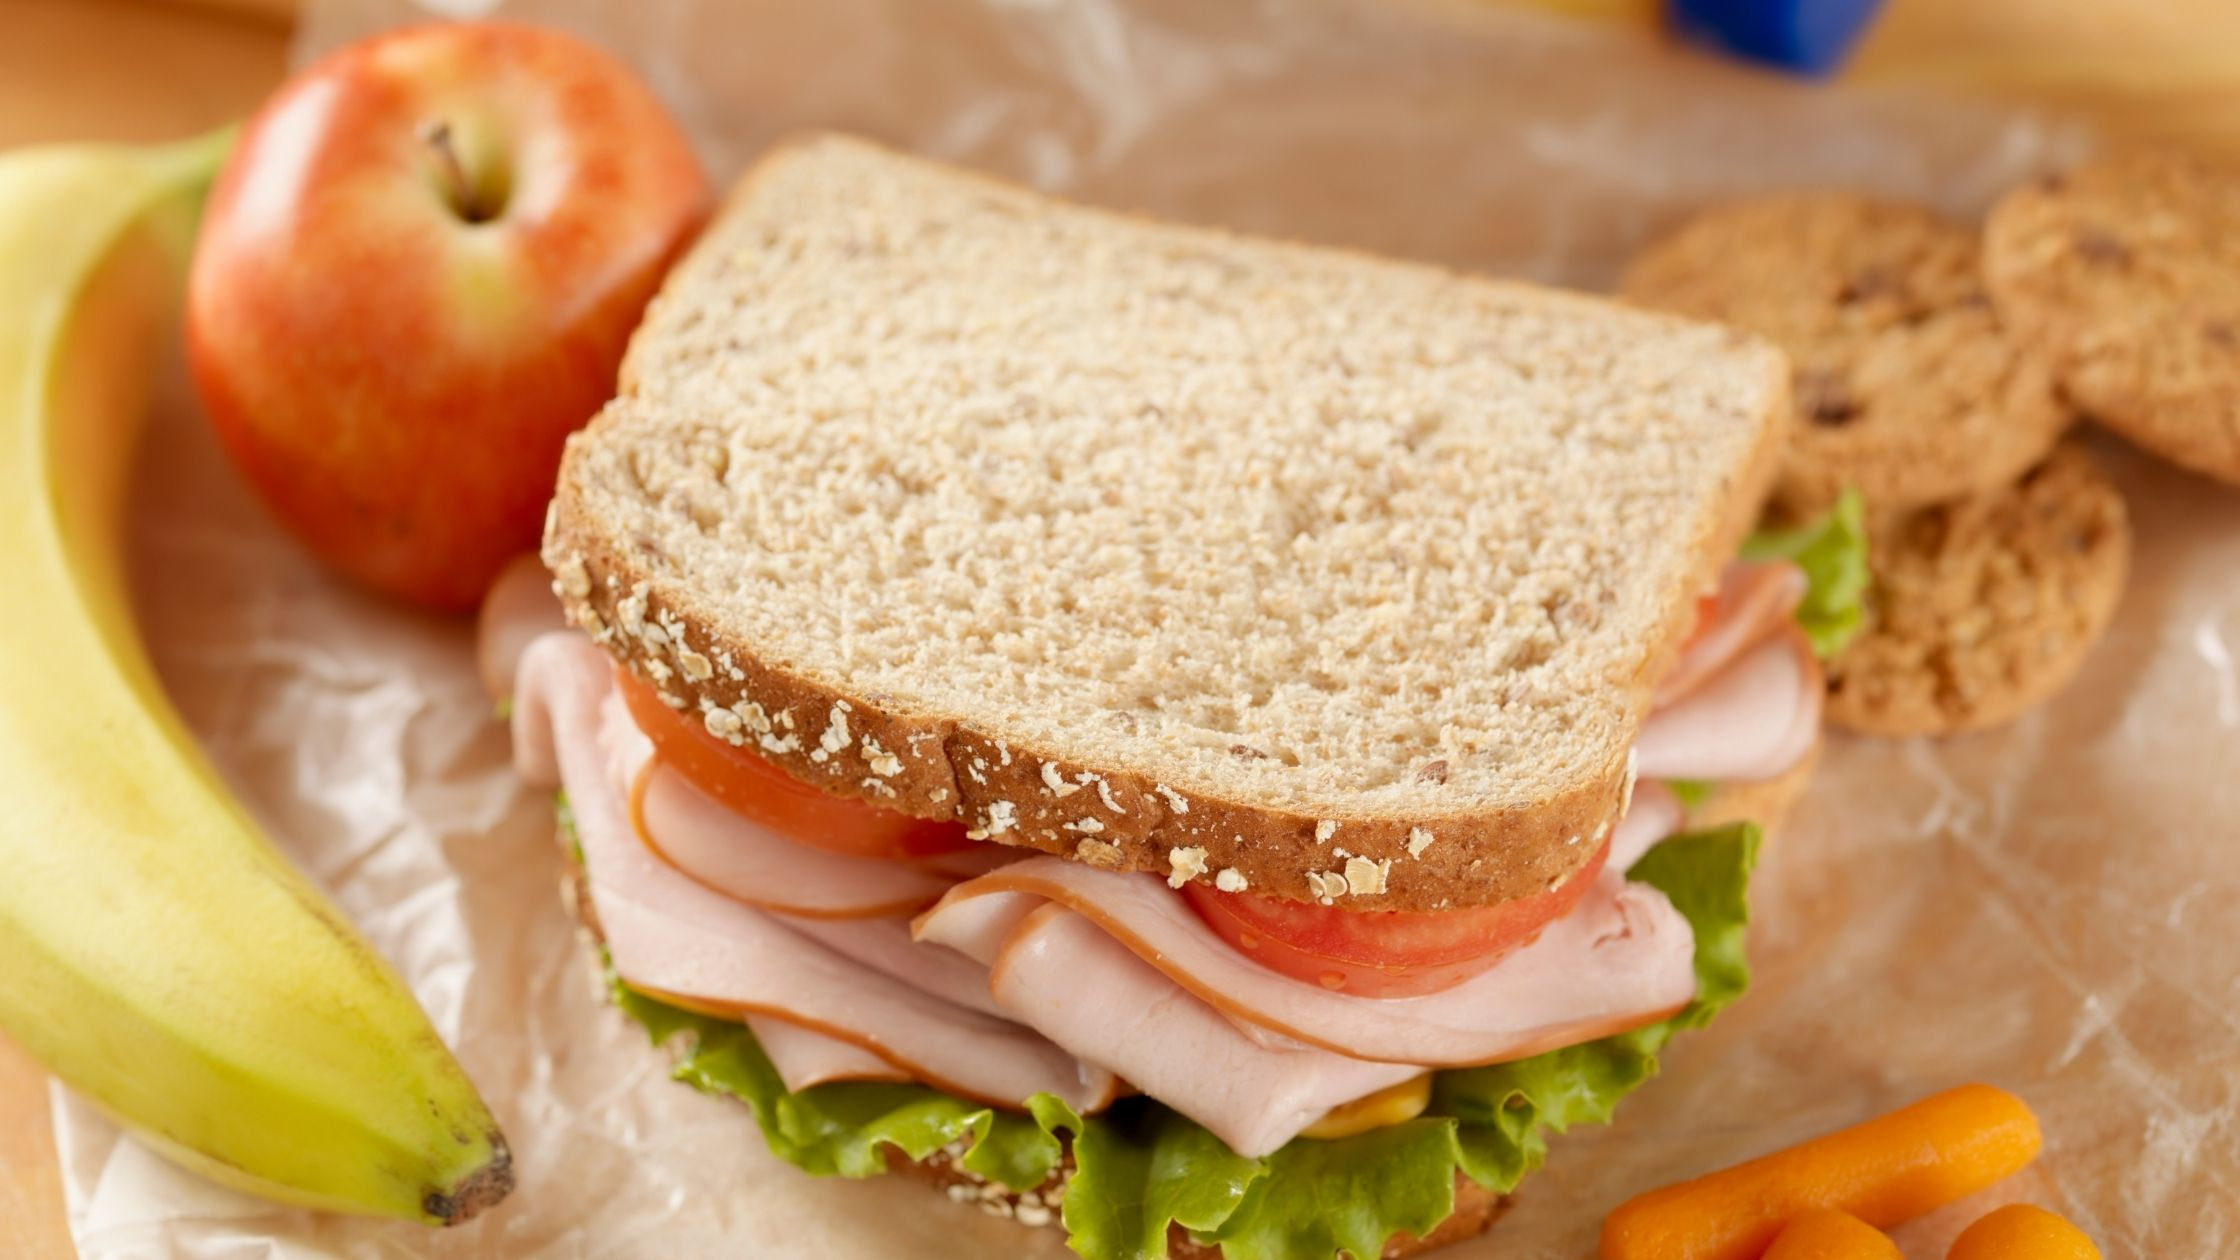 Sandwich and packed lunch